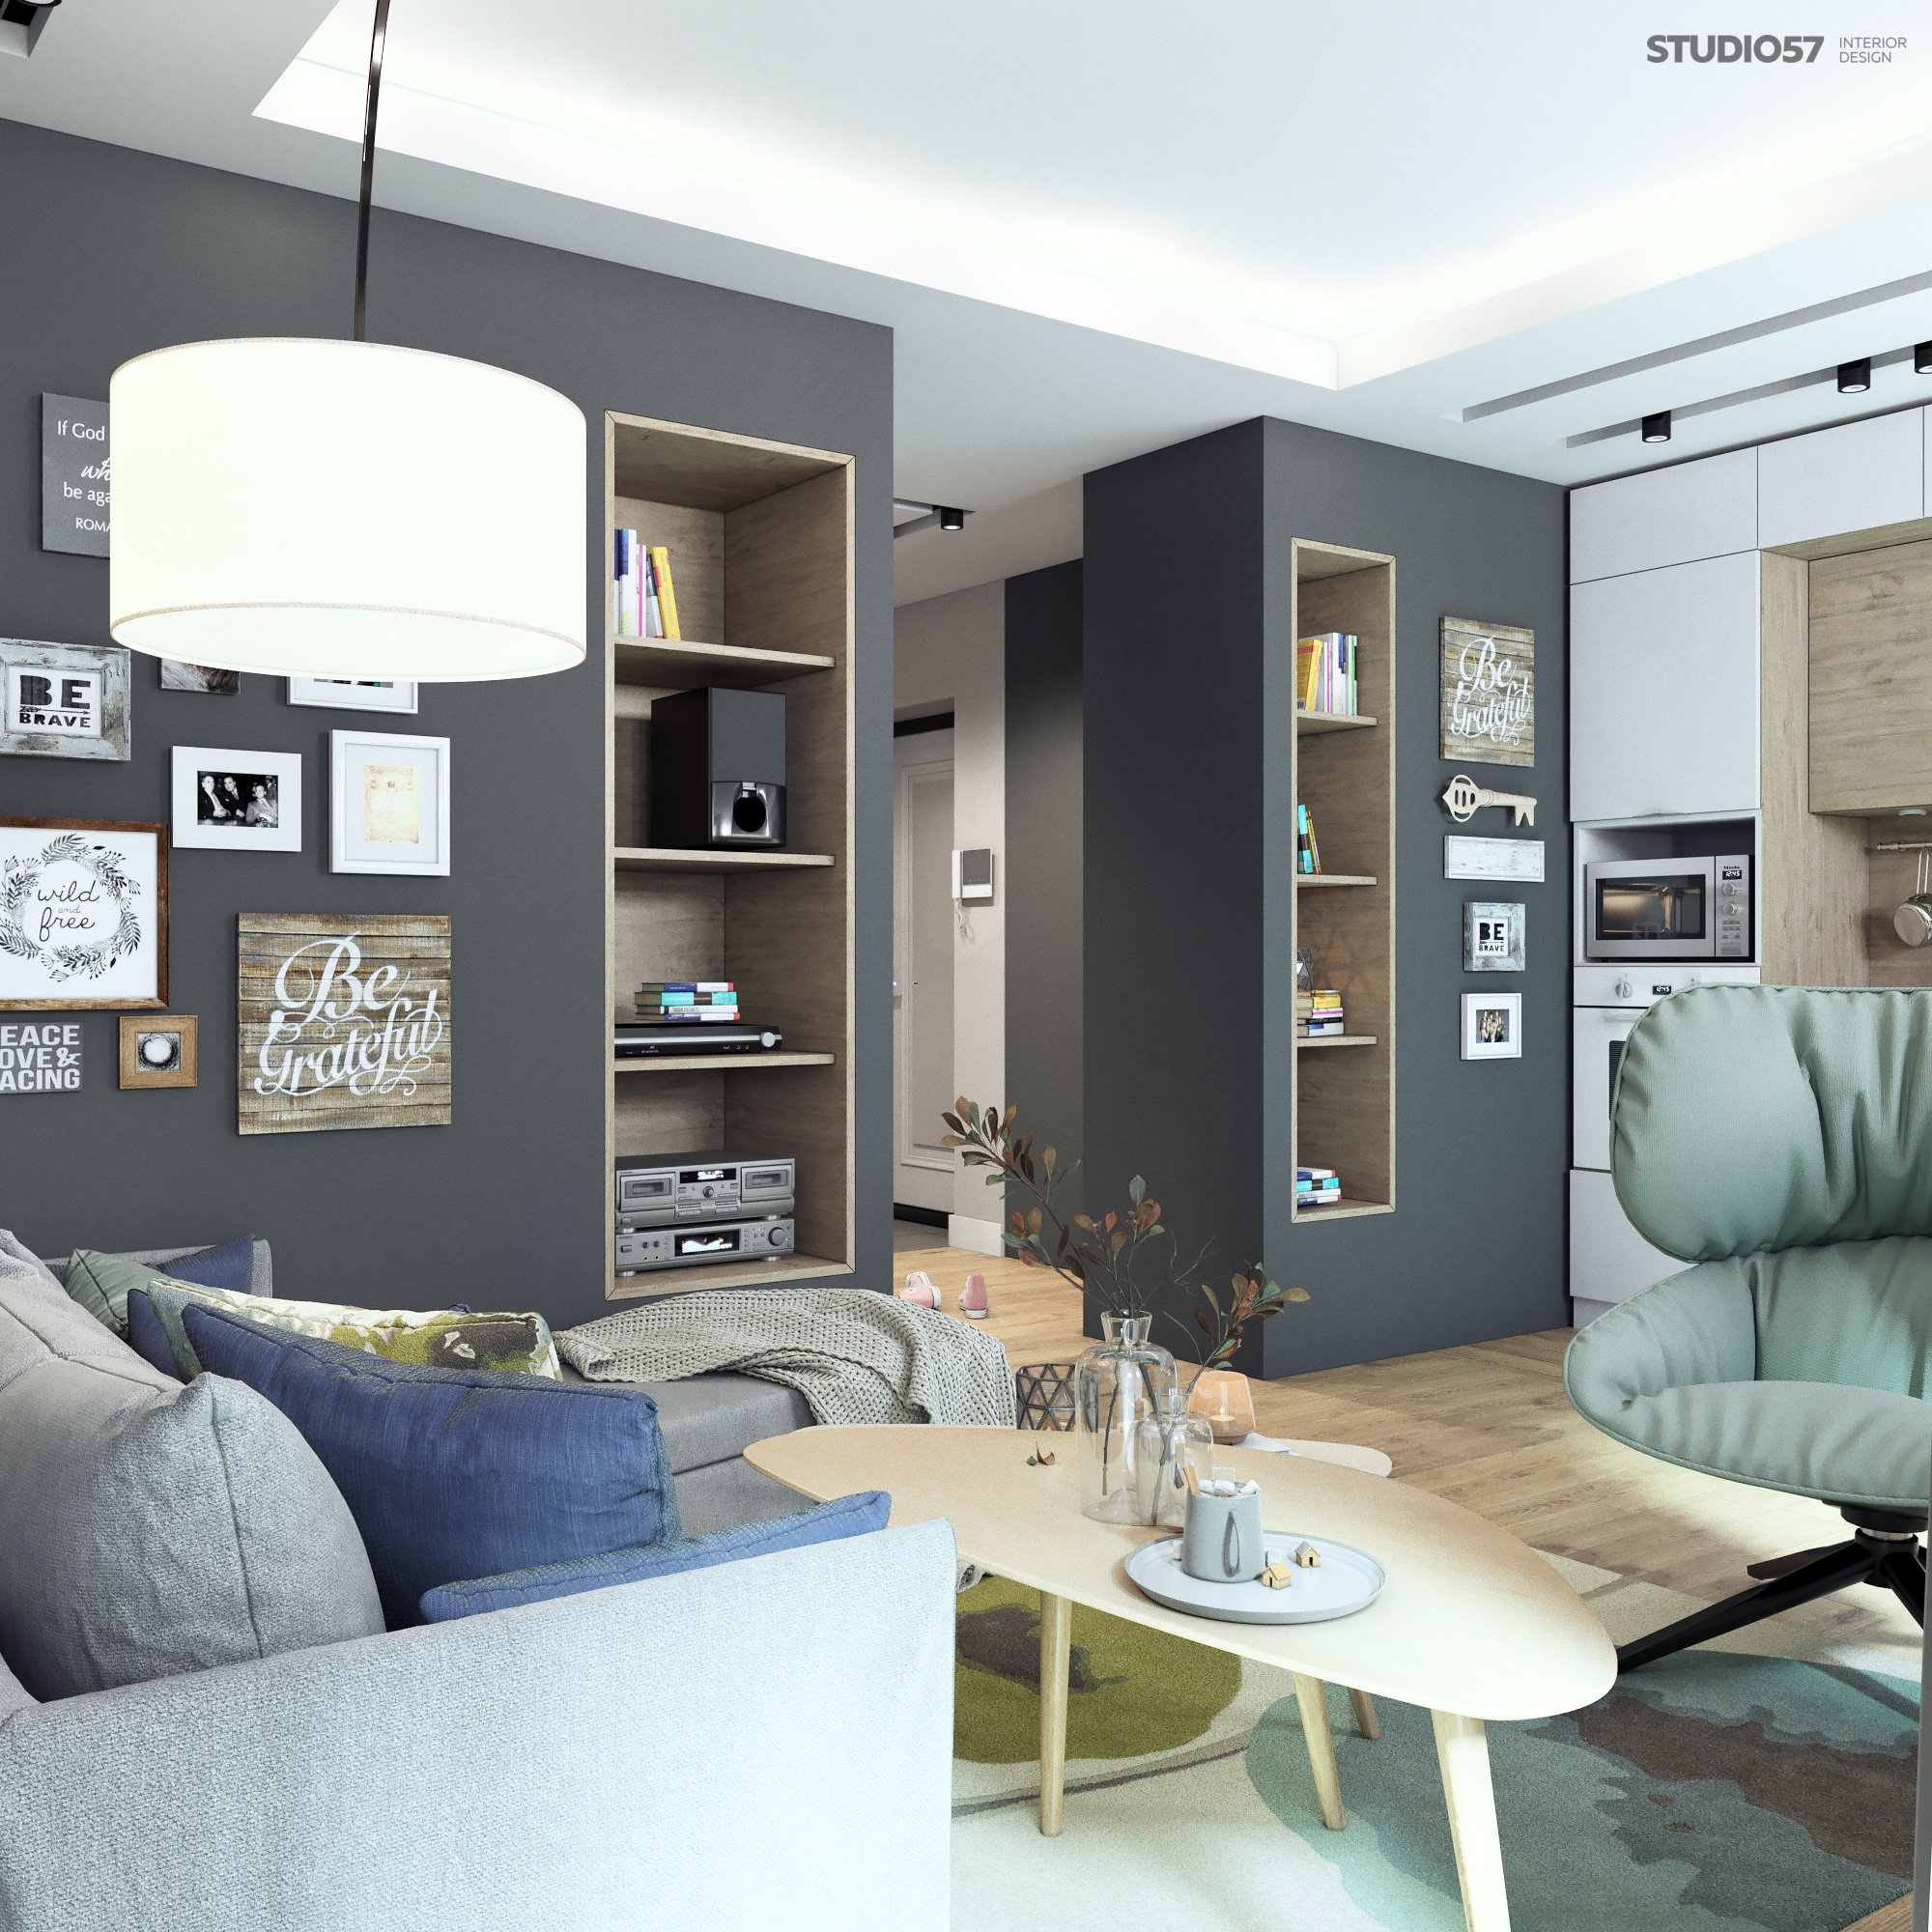 Design of the living room in the style of Contemporary photo